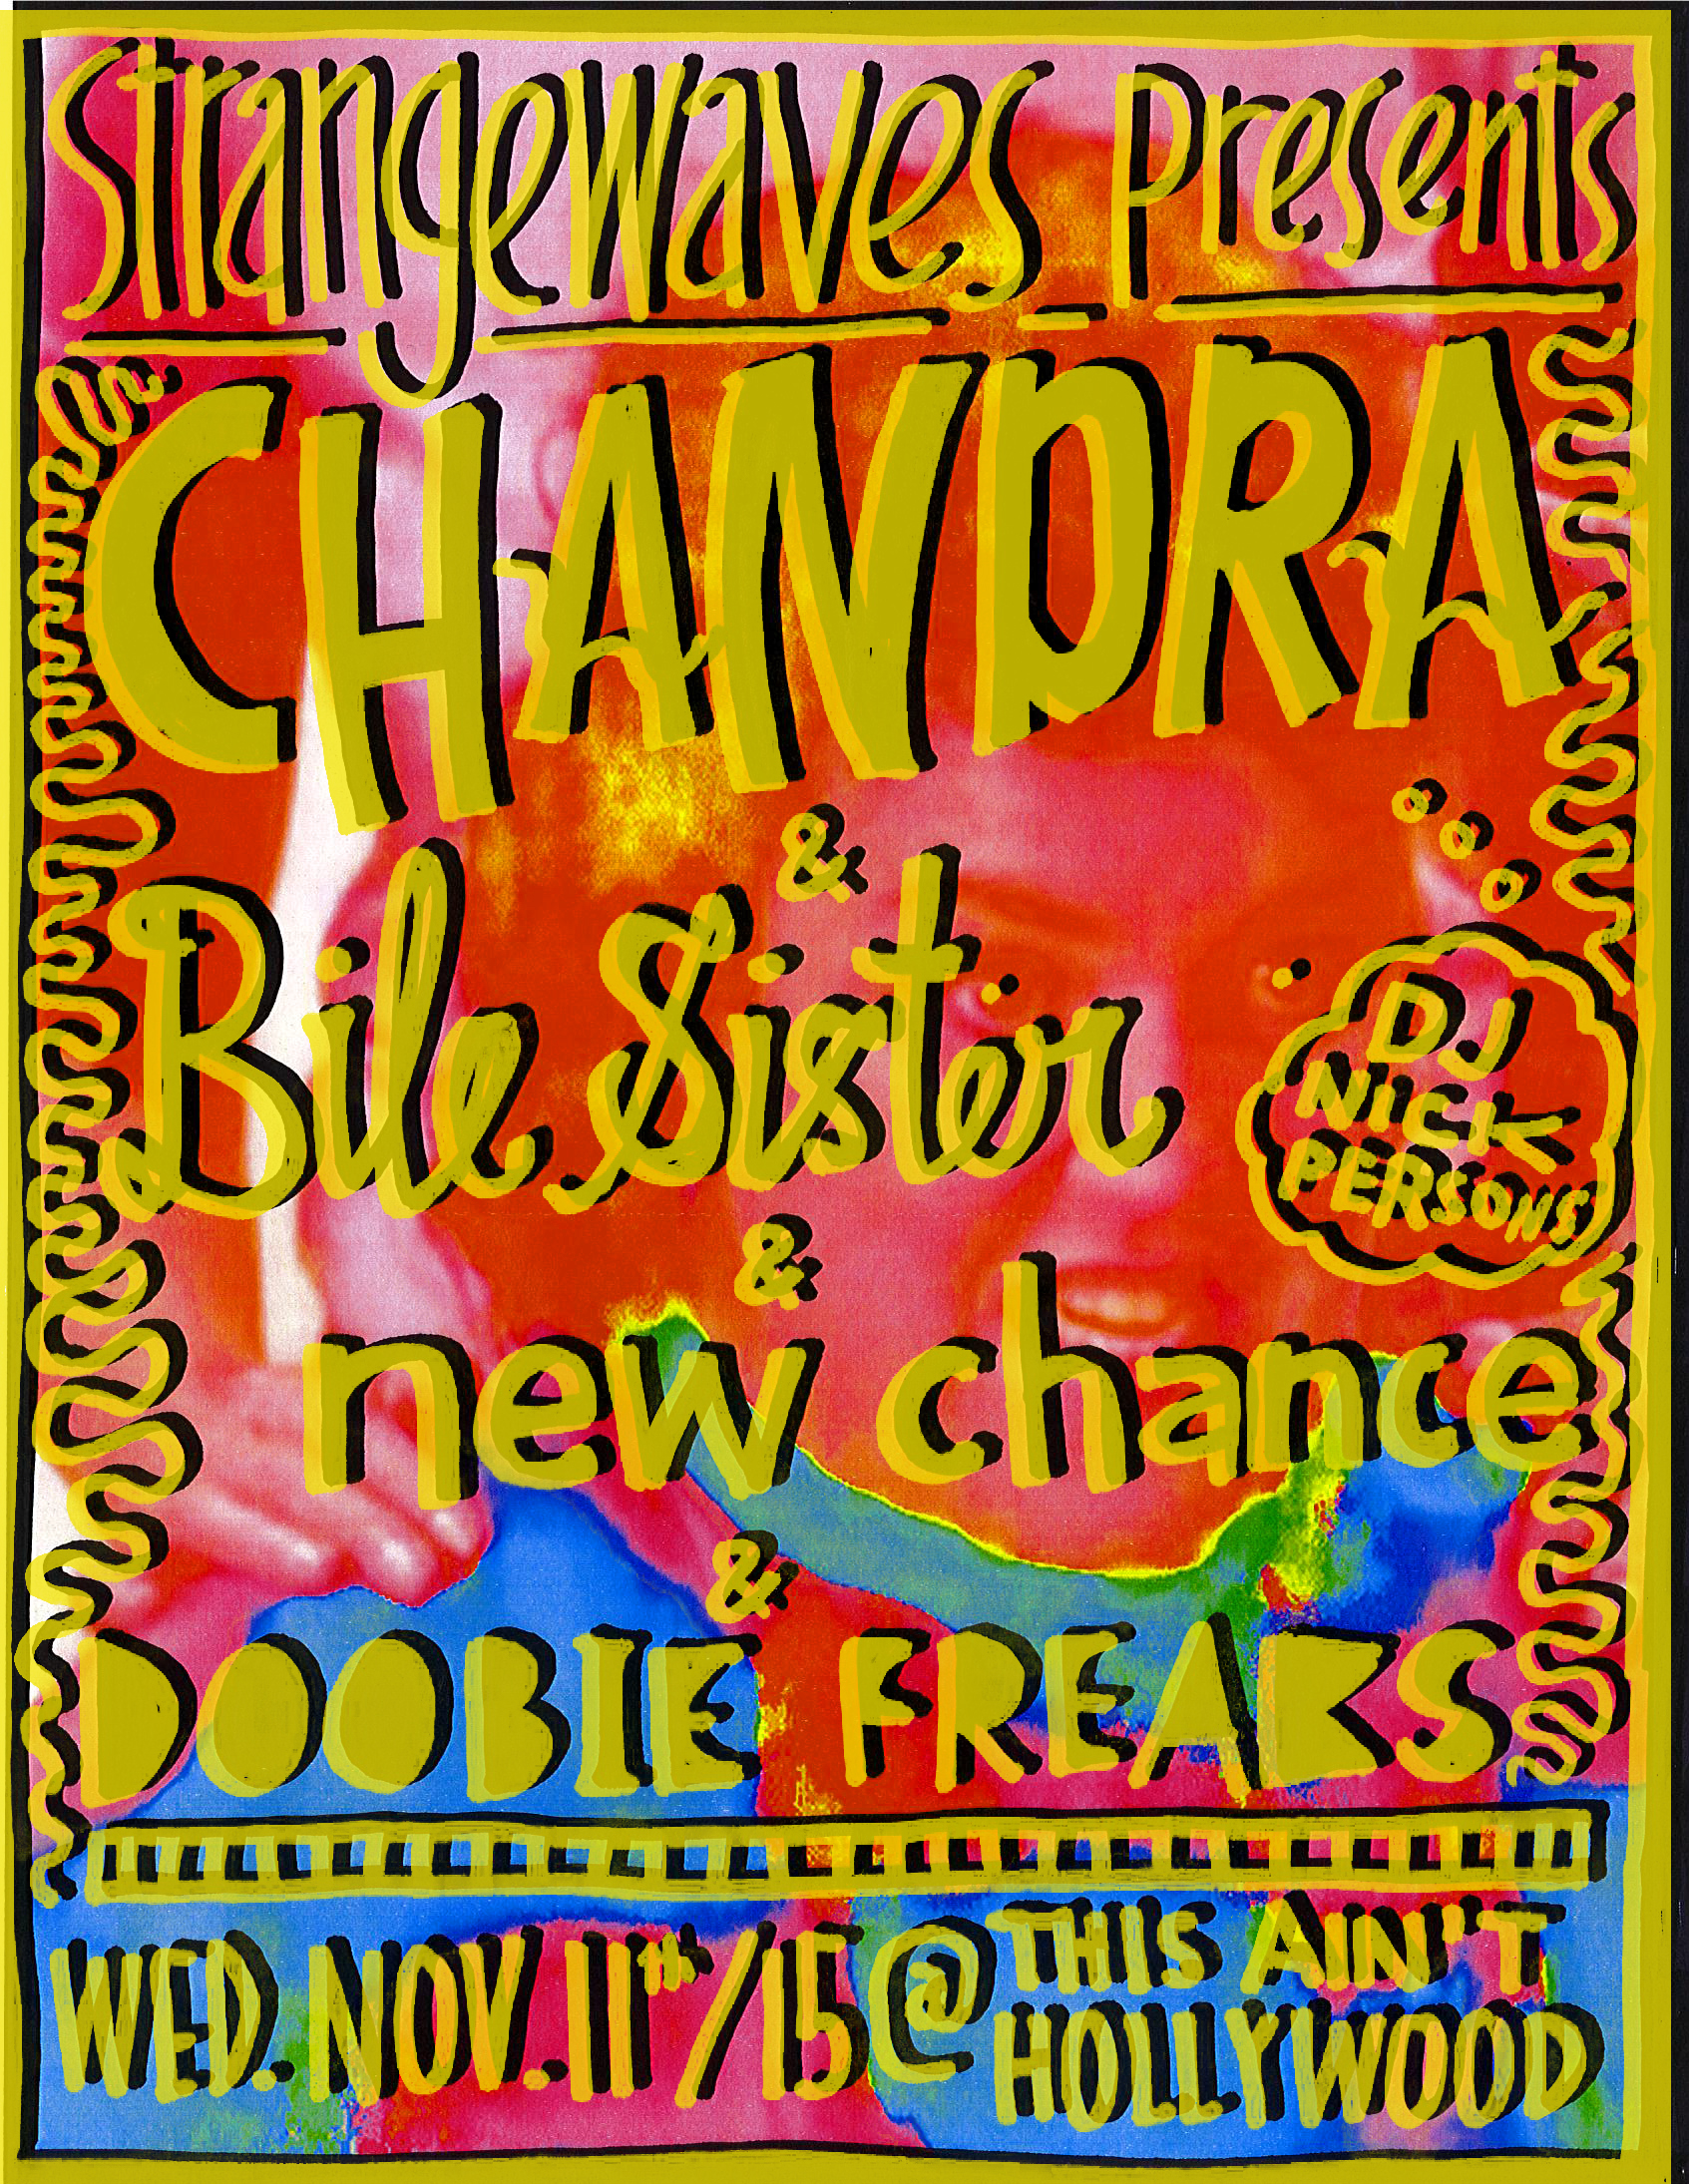 CHANDRA, BILE SISTER, NEW CHANCE, DOOBIE FREAKS  @This Ain't Hollywood